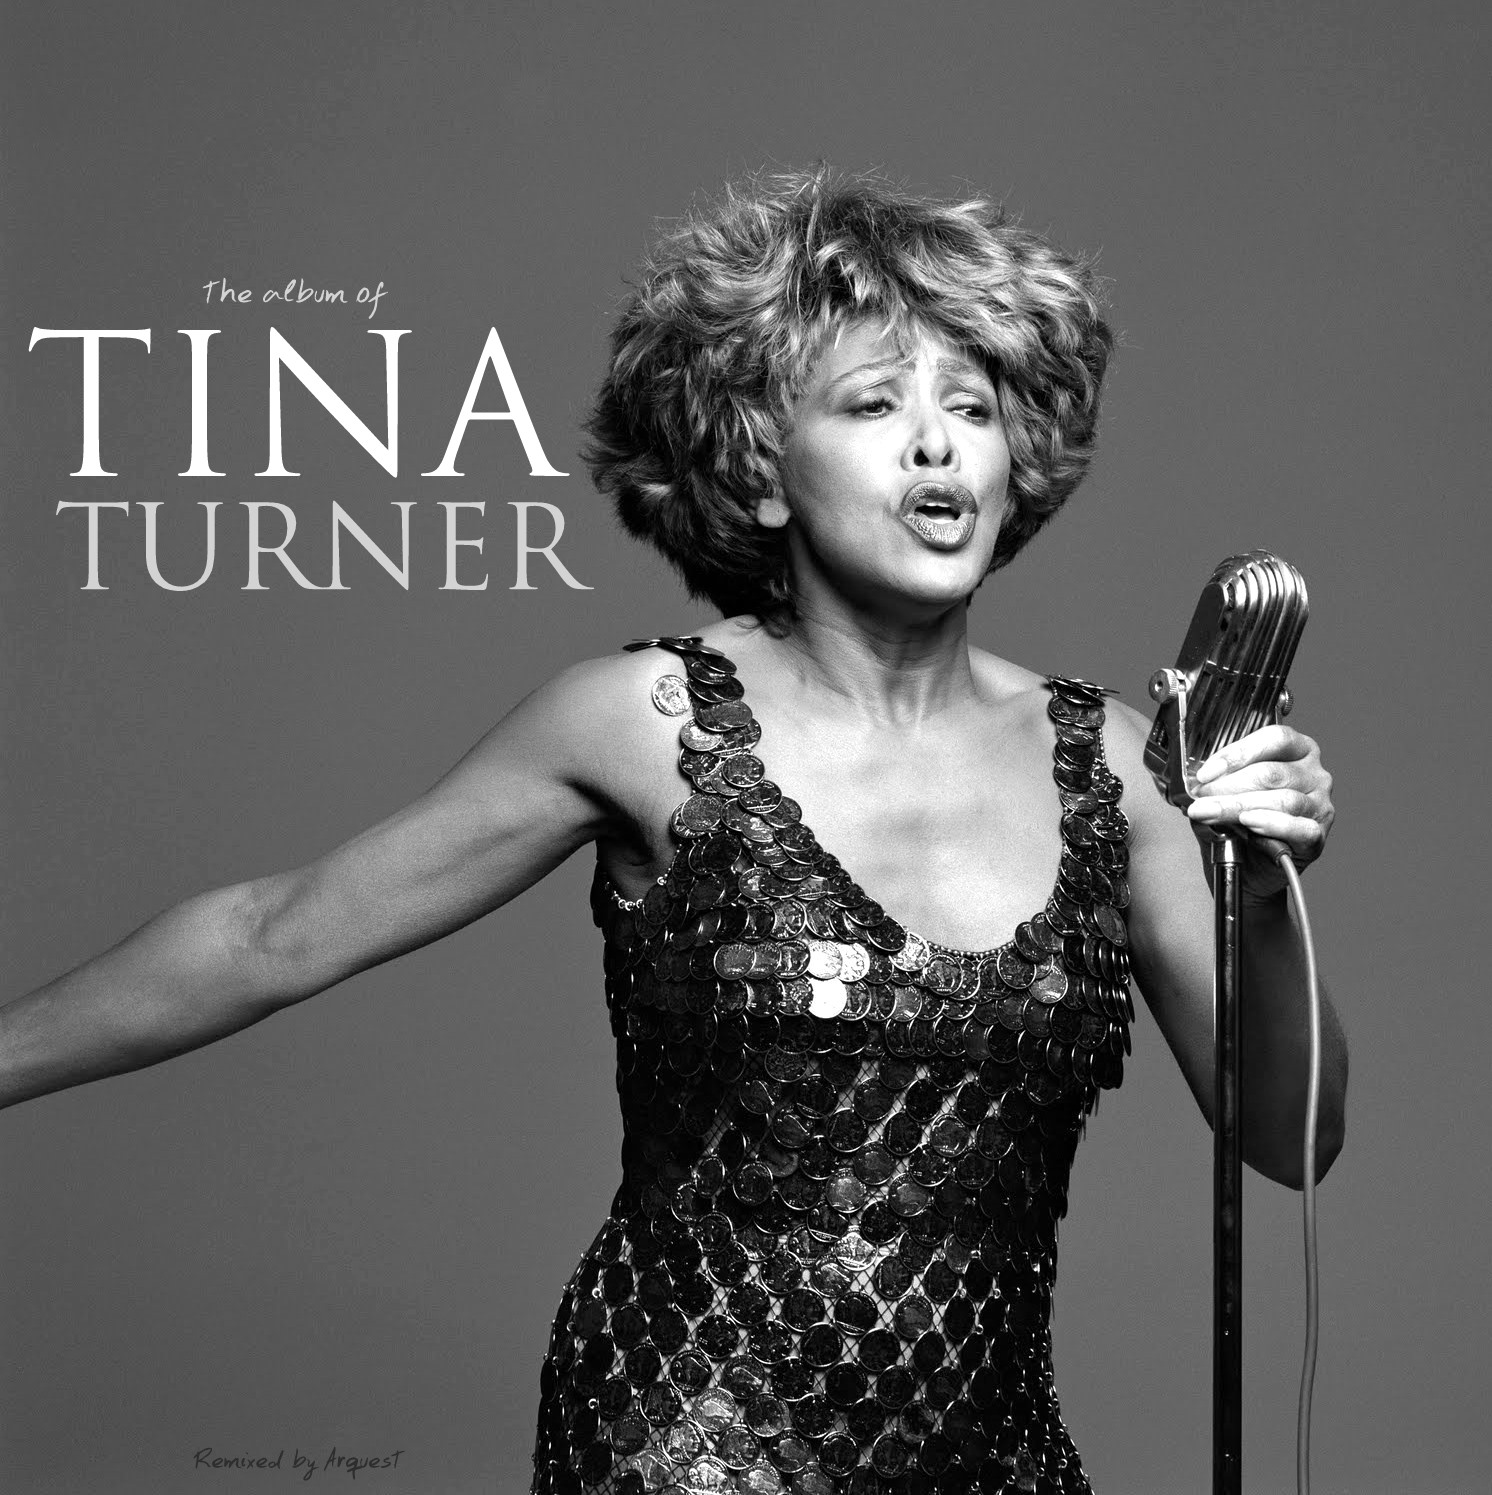 the album of tina turner  double mixed cd created by